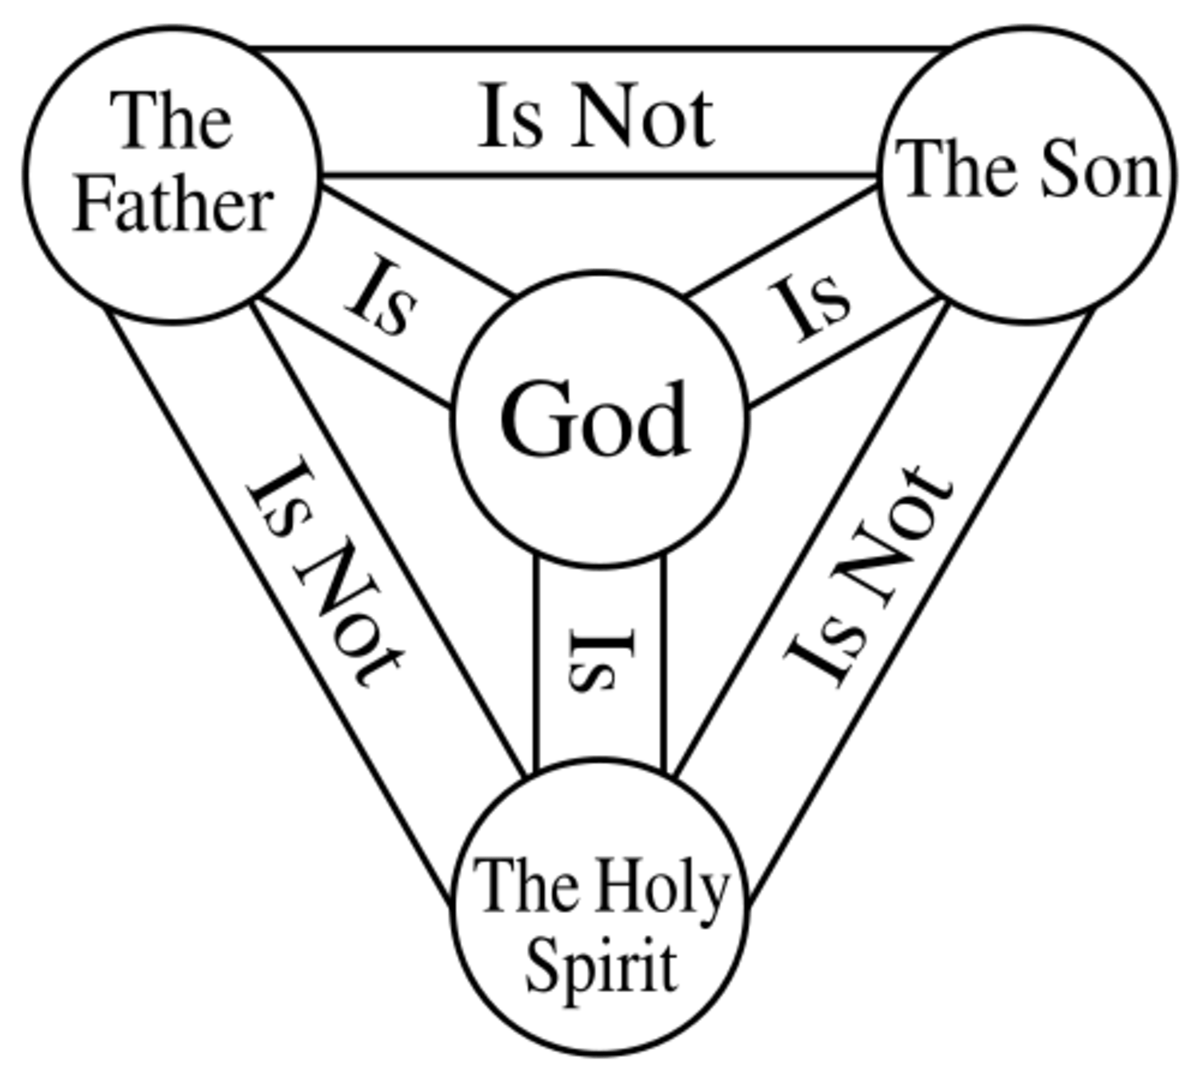 Clarifying the Trinity: Attributes of God the Father, Son